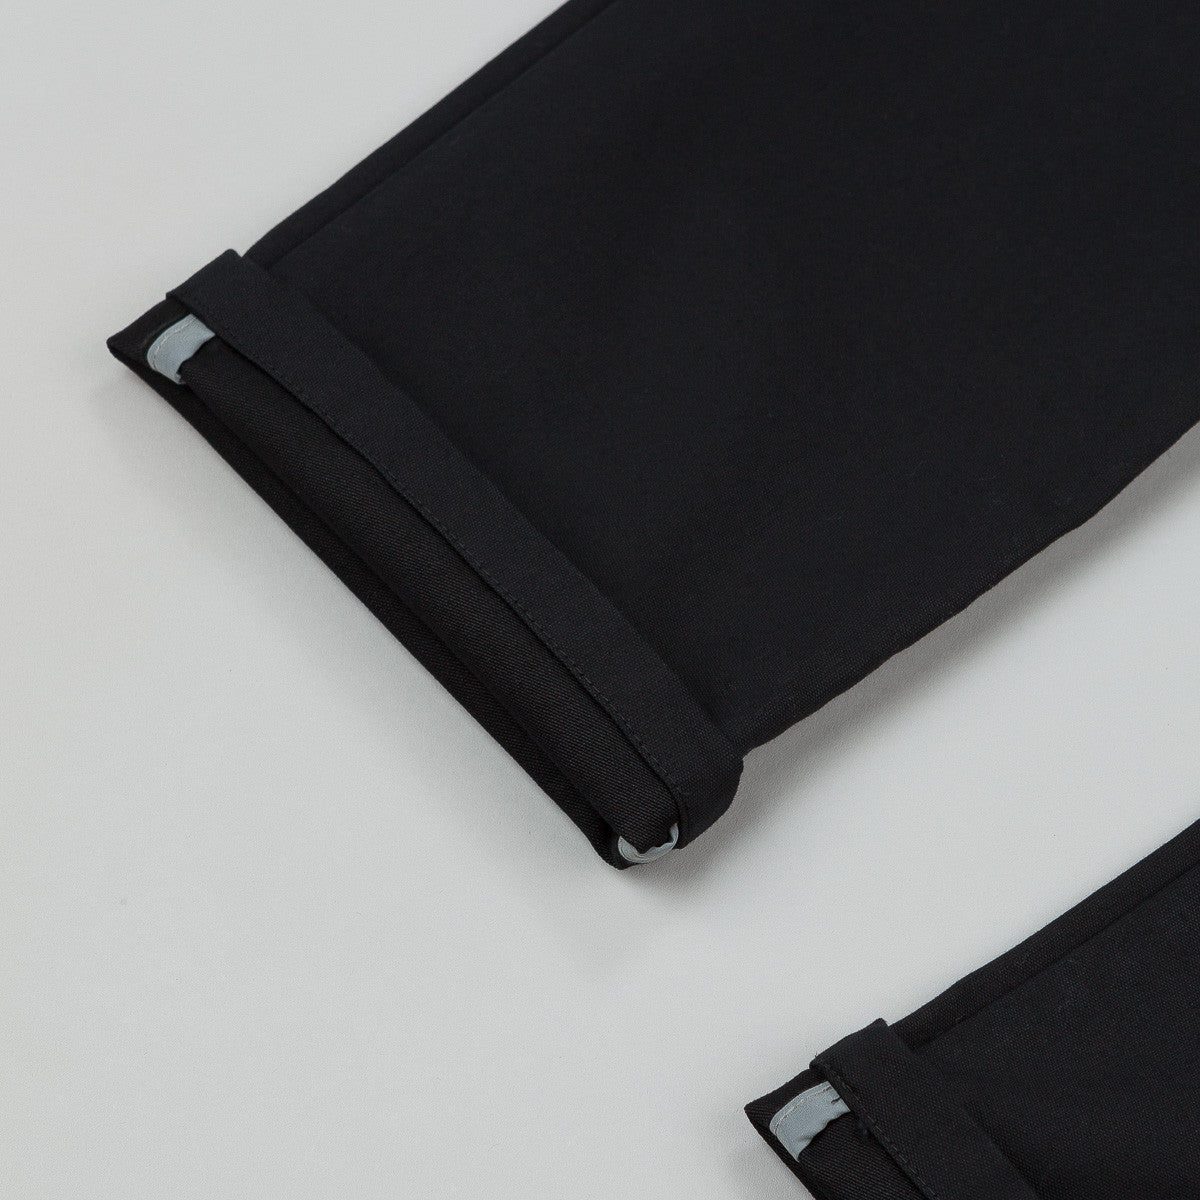 Nike SB FTM 5 Pocket Trousers - Black